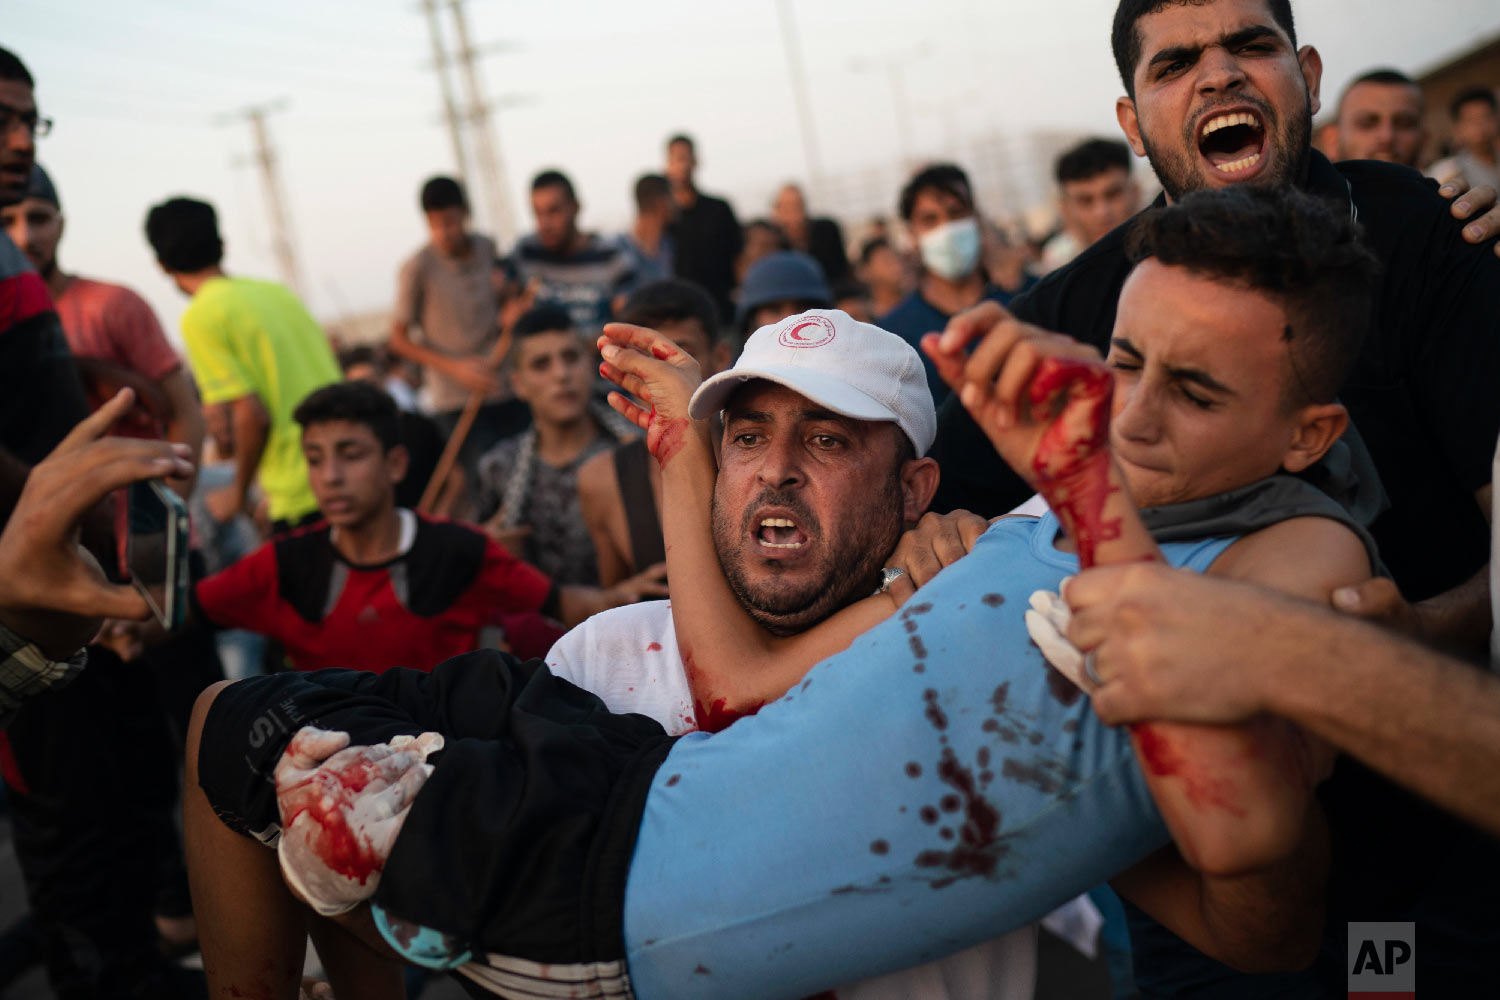 A young Palestinian protester is carried to an ambulance after being shot during a protest at the entrance of Erez border crossing between Gaza and Israel, in the northern Gaza Strip, Sept. 4, 2018. (AP Photo/Felipe Dana)